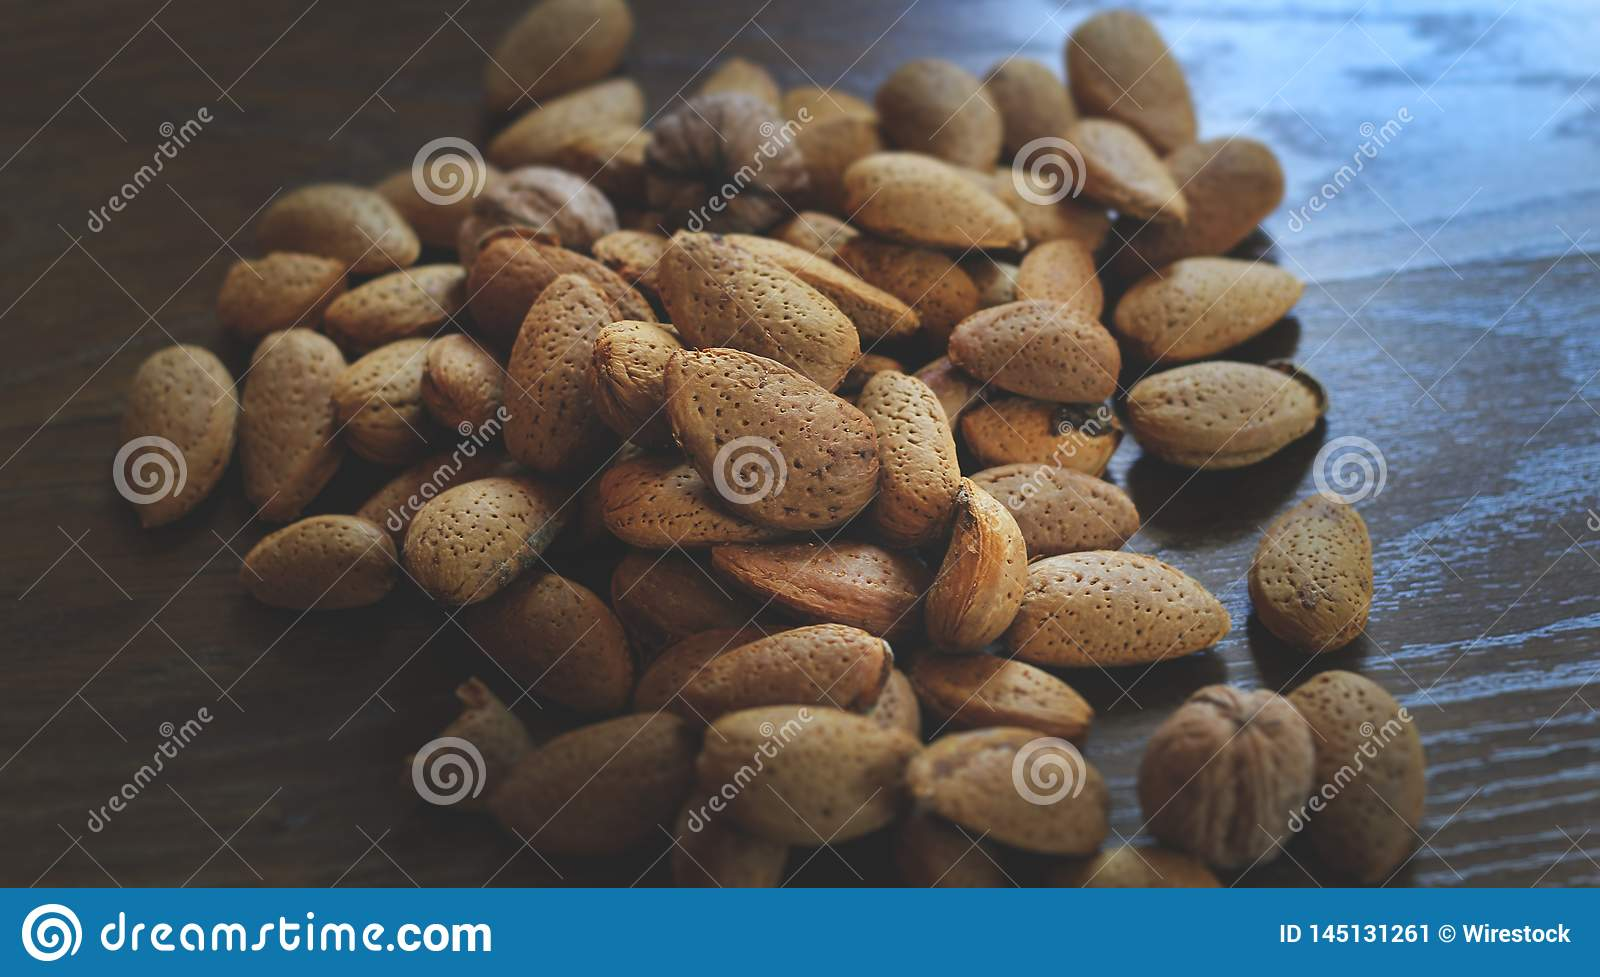 Bunch of pine nuts on a wooden table